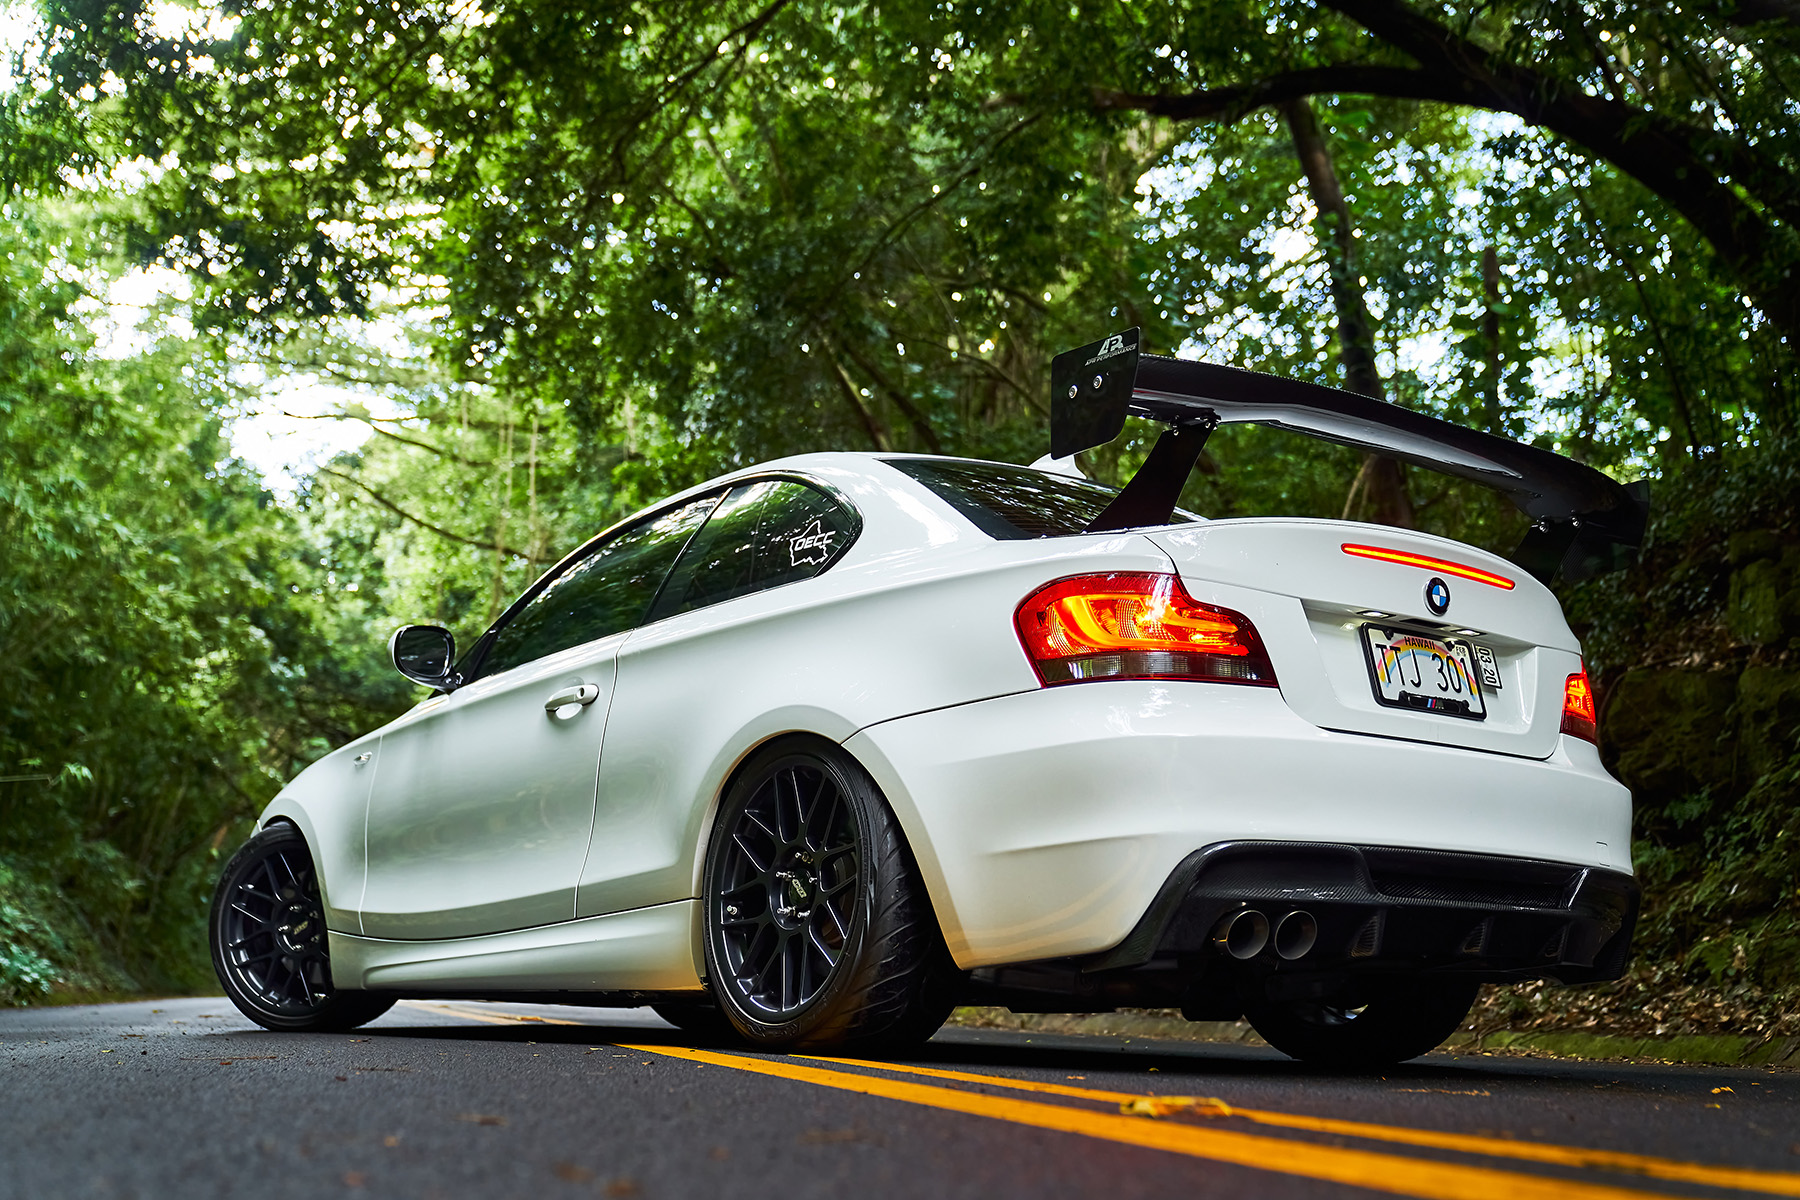 Well Sorted BMW 135i Featuring ARC-8 Wheels